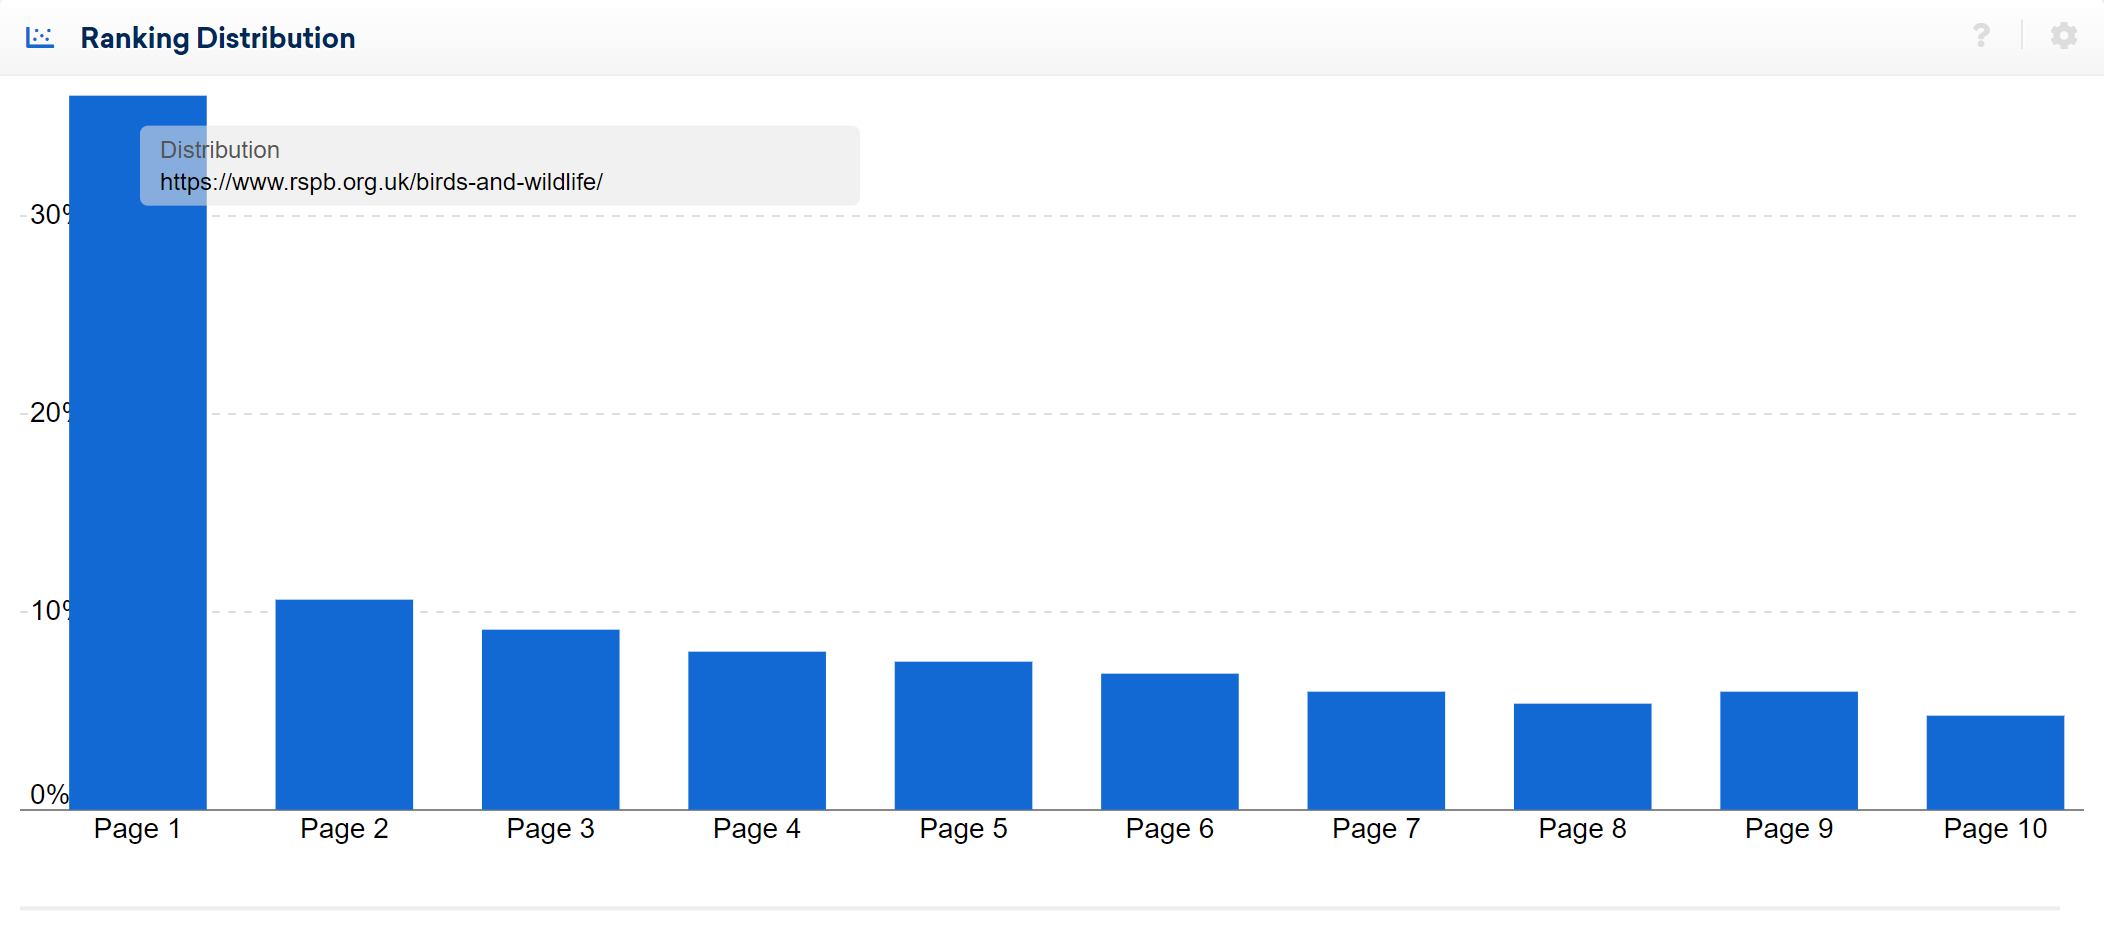 An example of how rankings are assigned across the ranking distribution